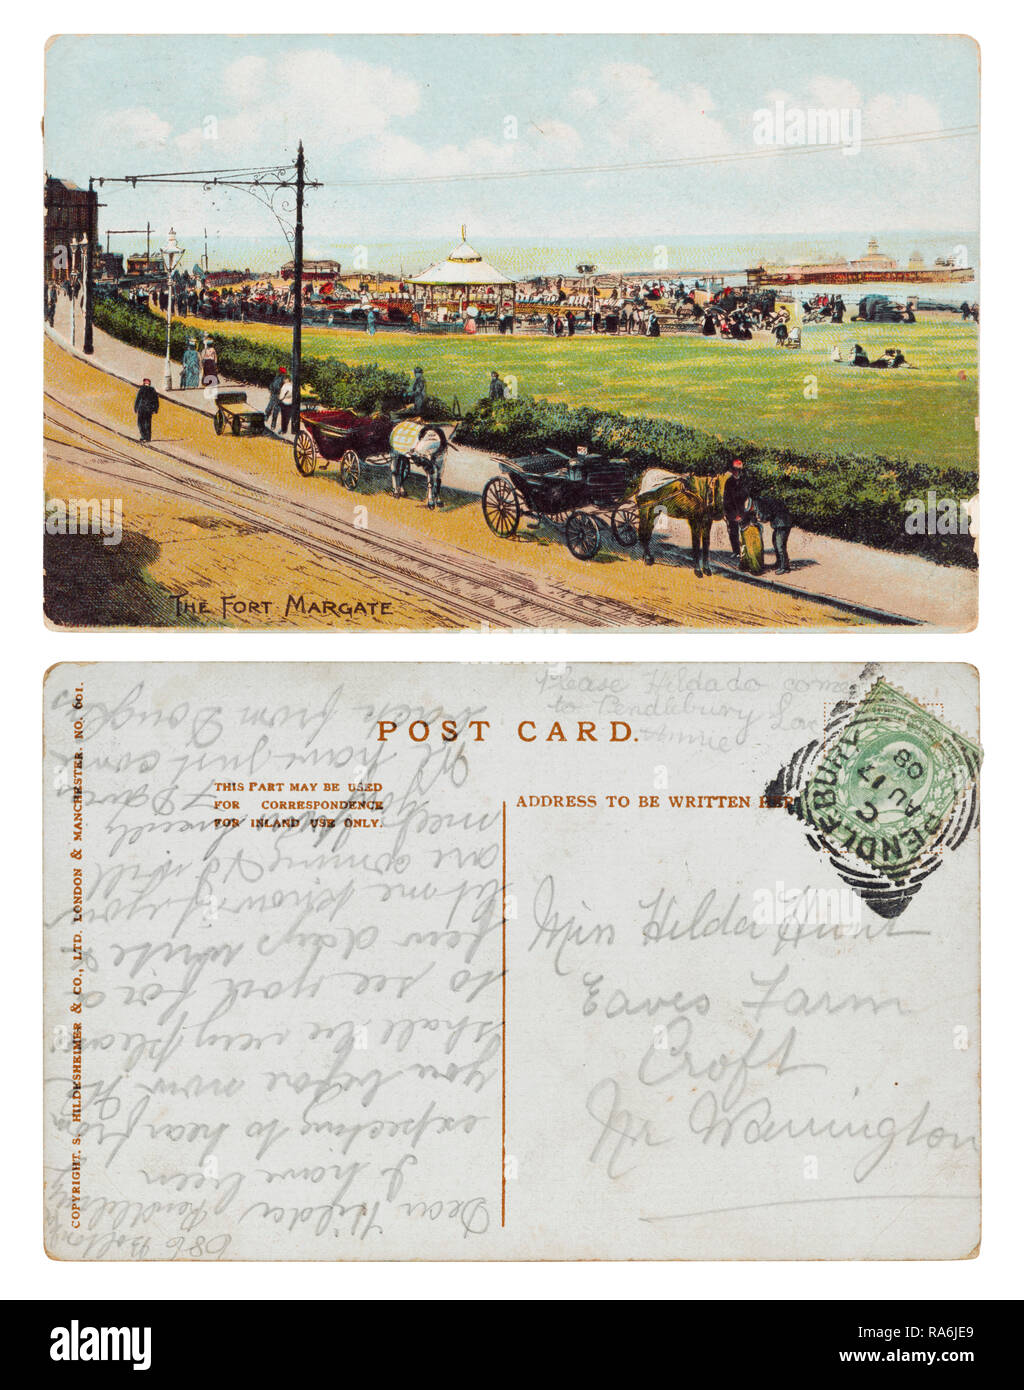 Postcard of the Fort Margate sent from 686 Bolton Road, Pendlebury to Miss Hilda Hunt, Eaves Farm, Croft, Warrington in August 1908 - Stock Image